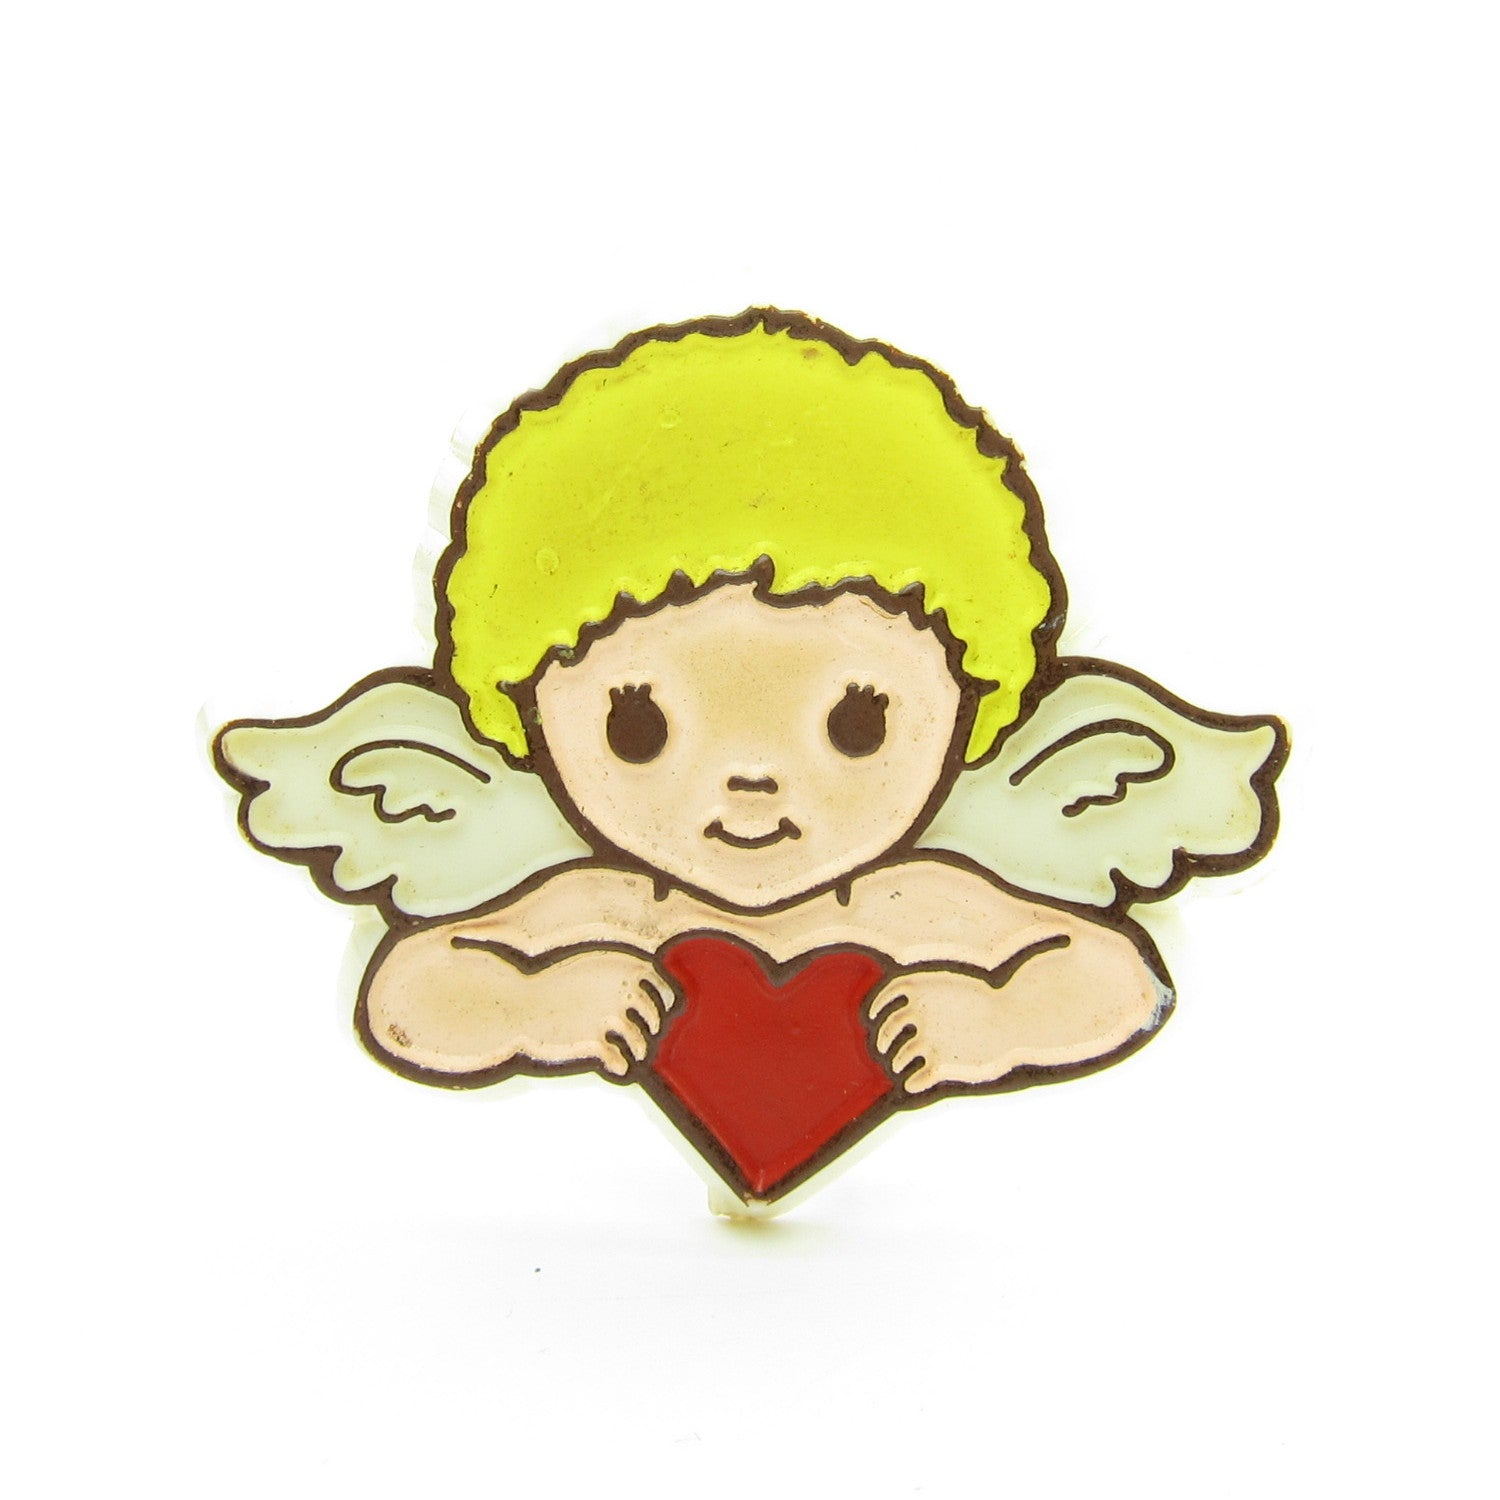 Cupid 1979 Hallmark Valentine's Day pin